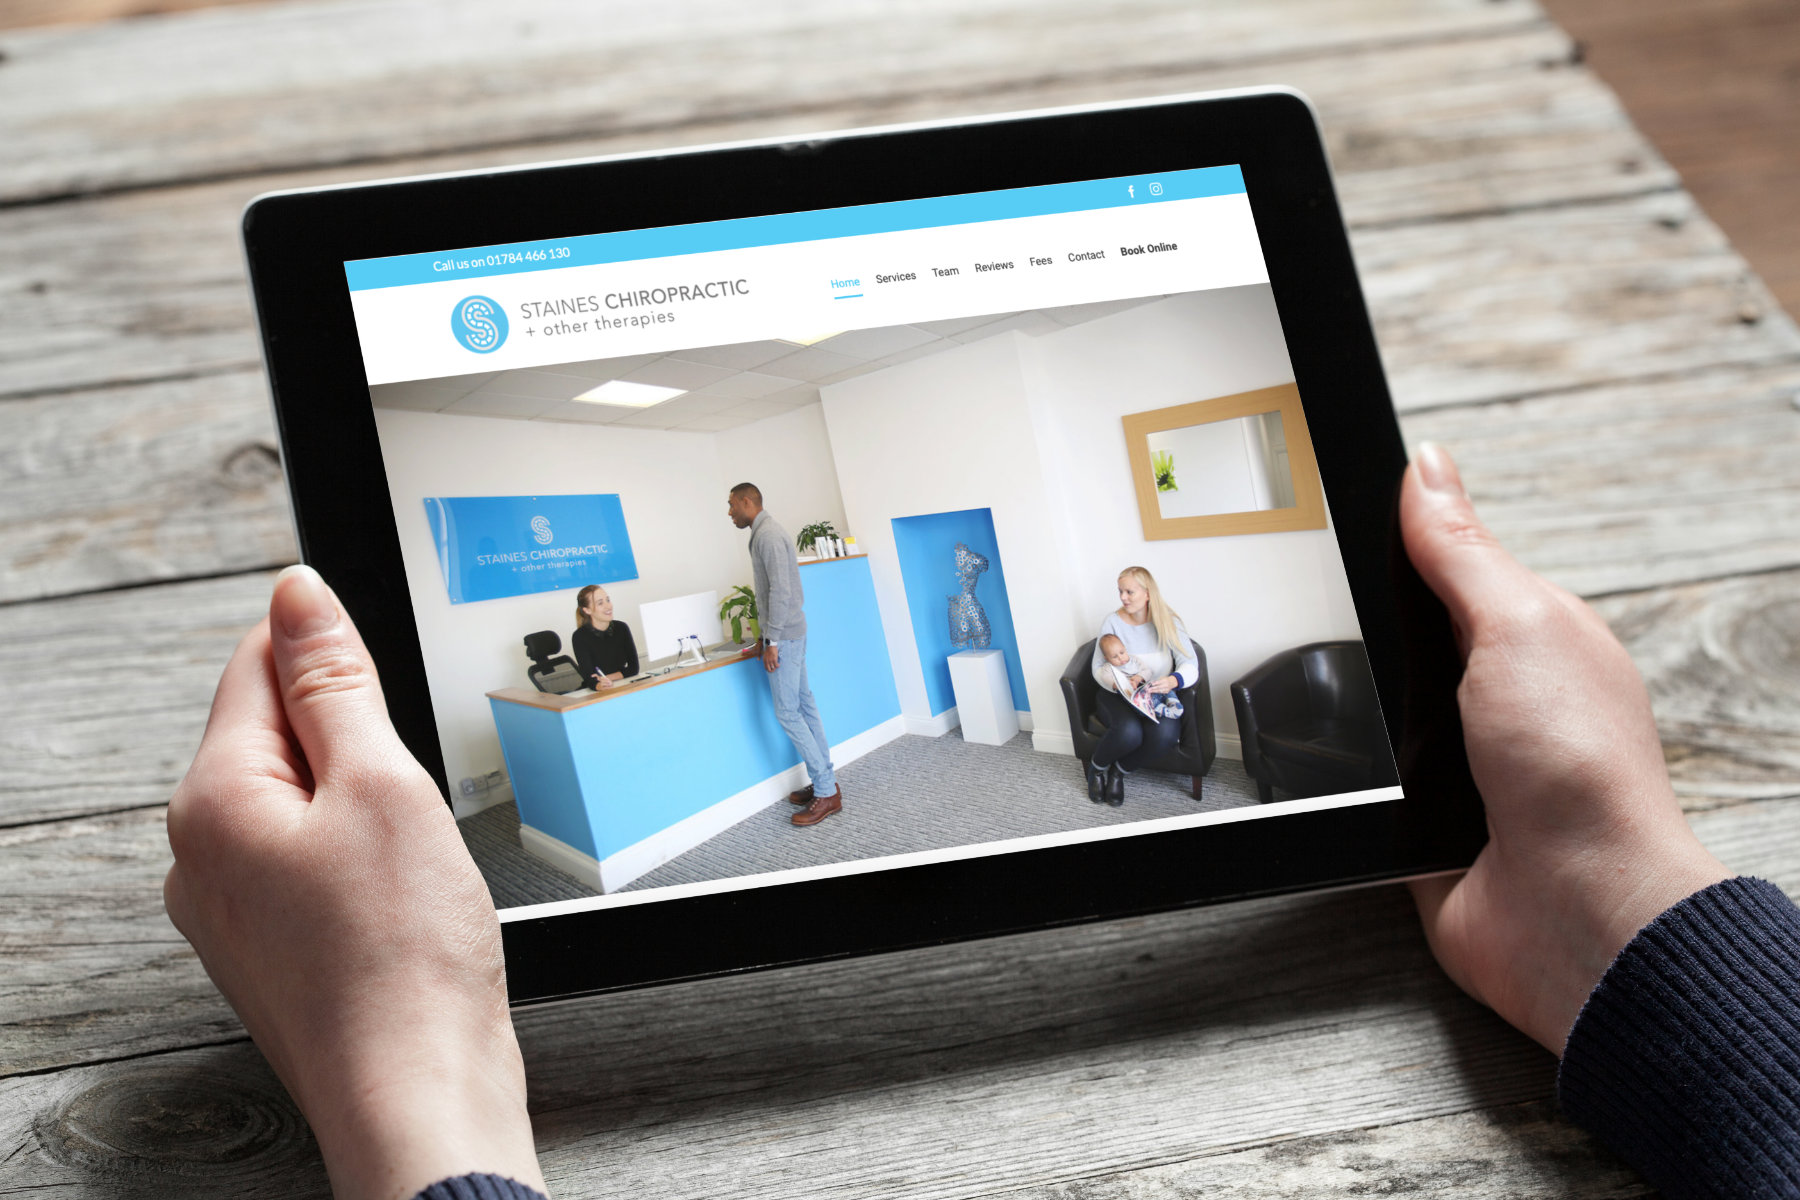 Staines Chiropractic clinic website deisgn on iPad